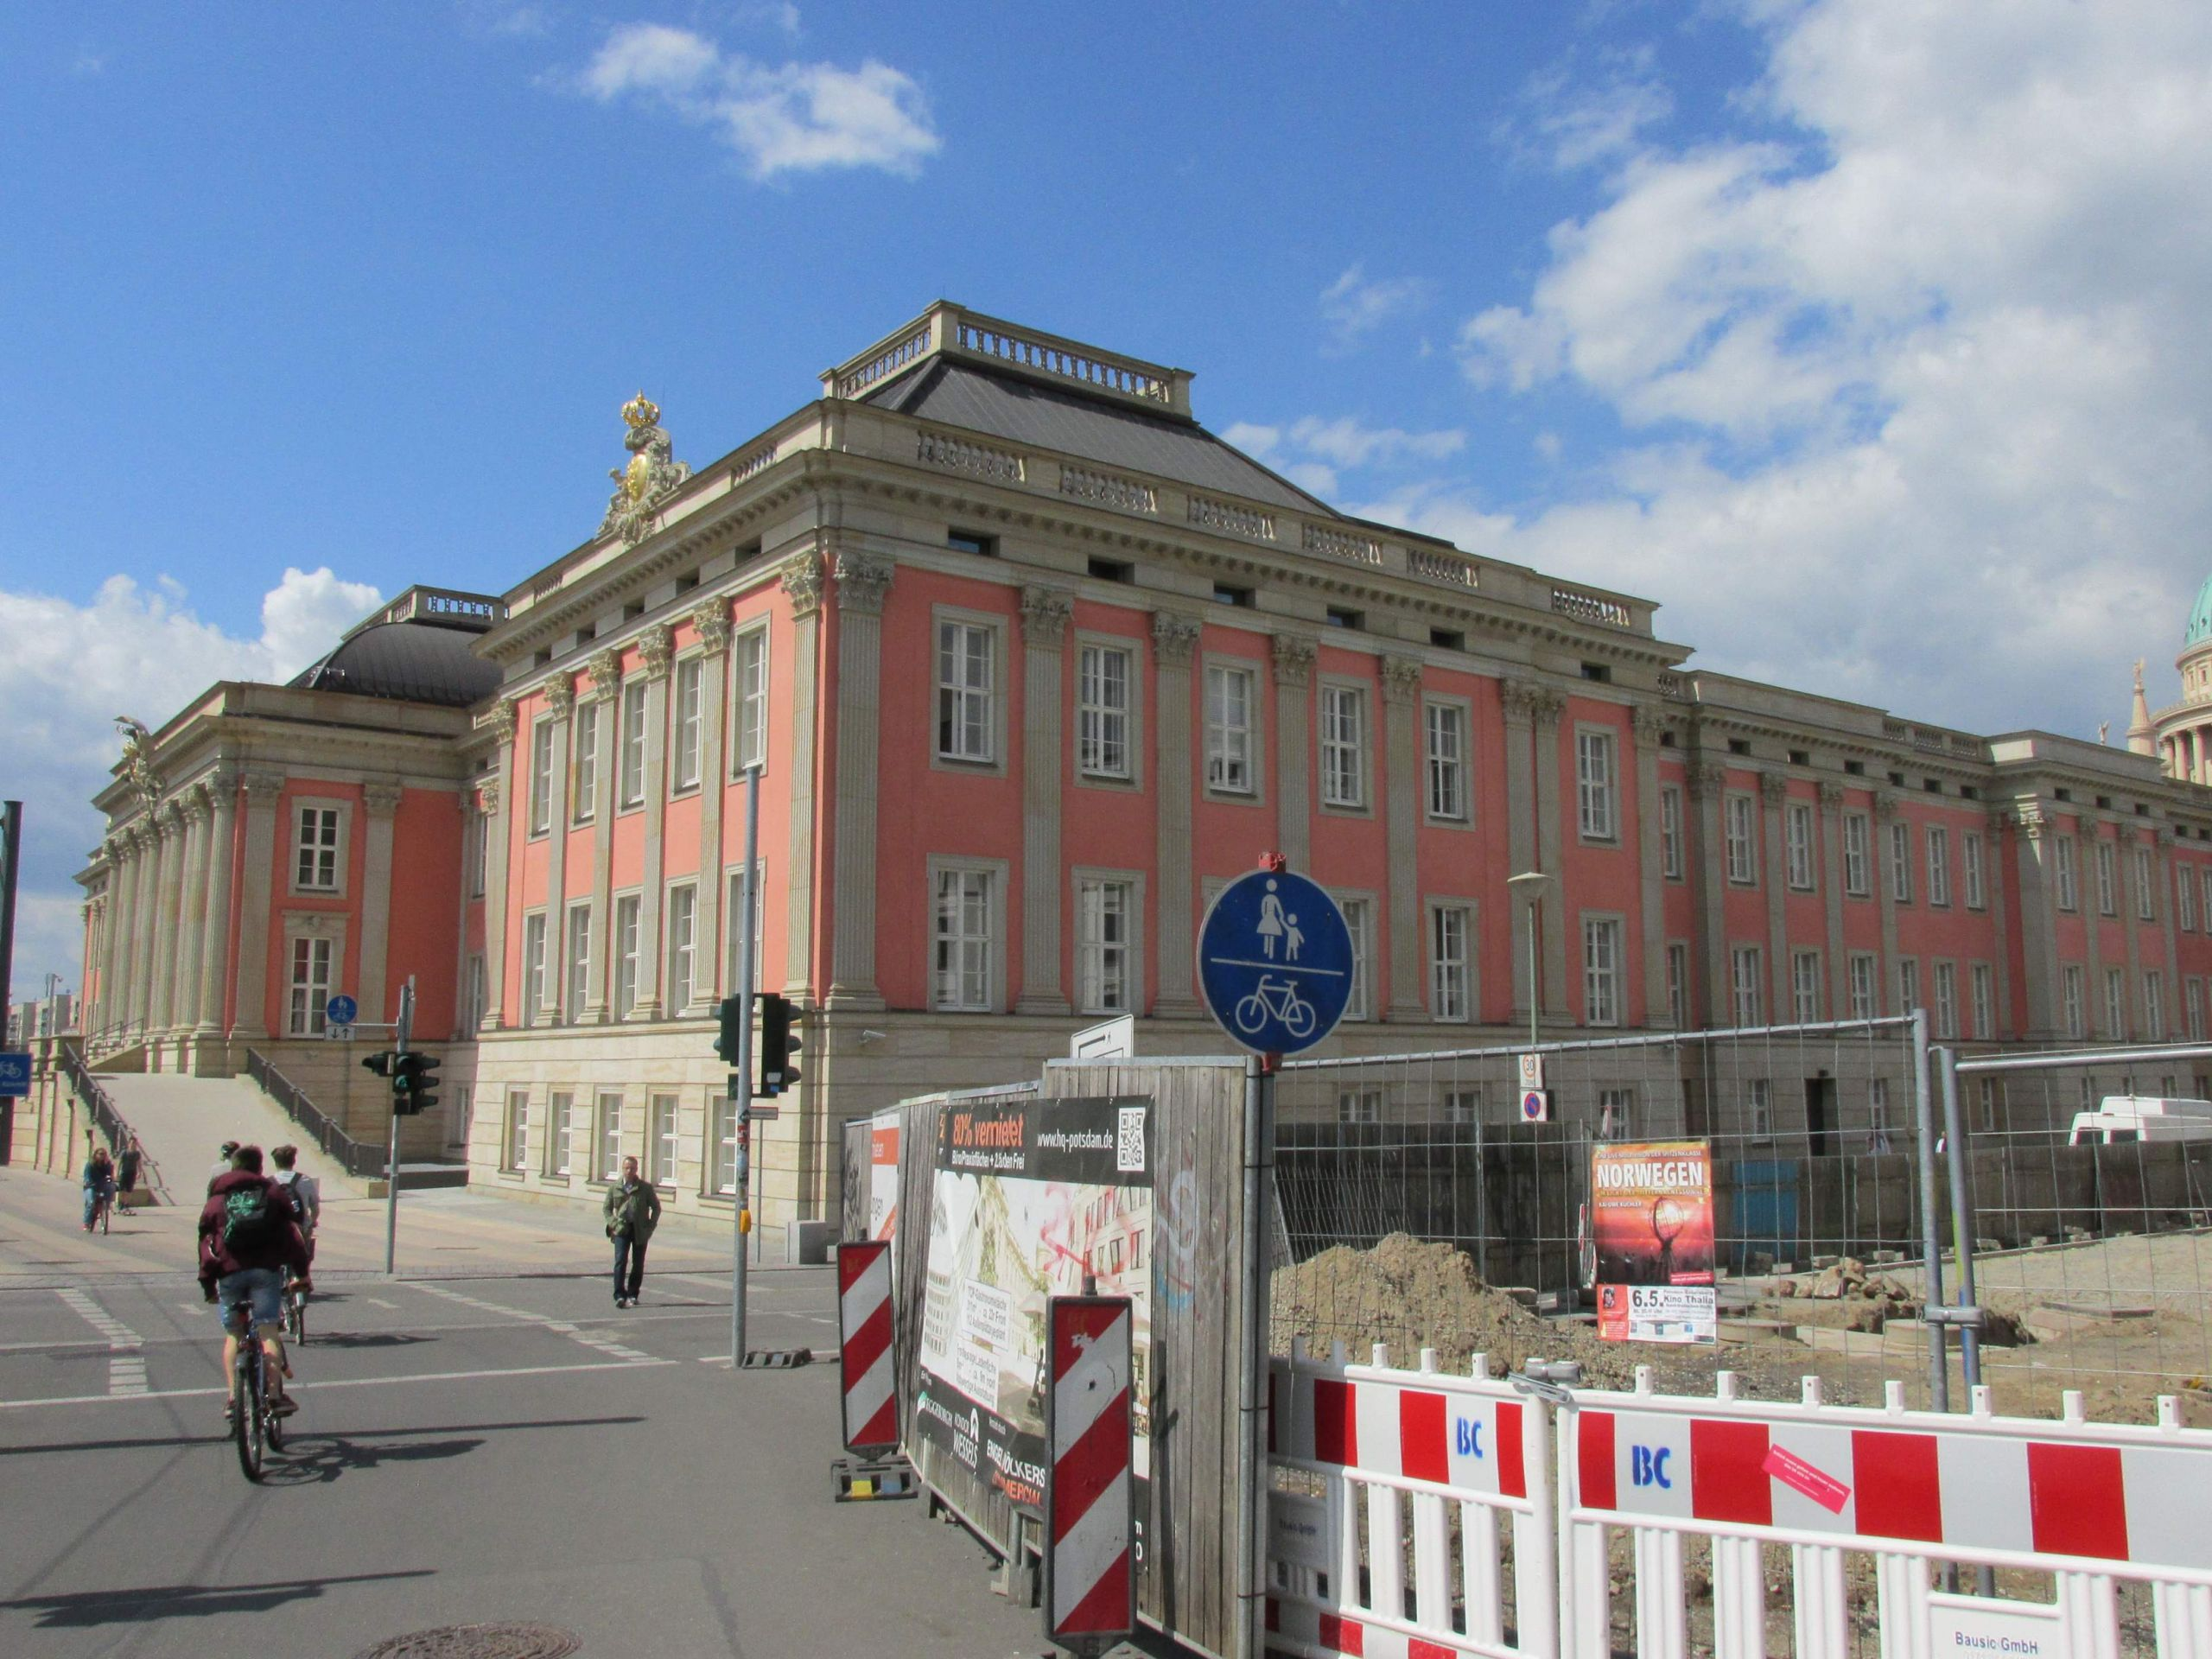 Potsdam Stadtschloss from SE May 2015